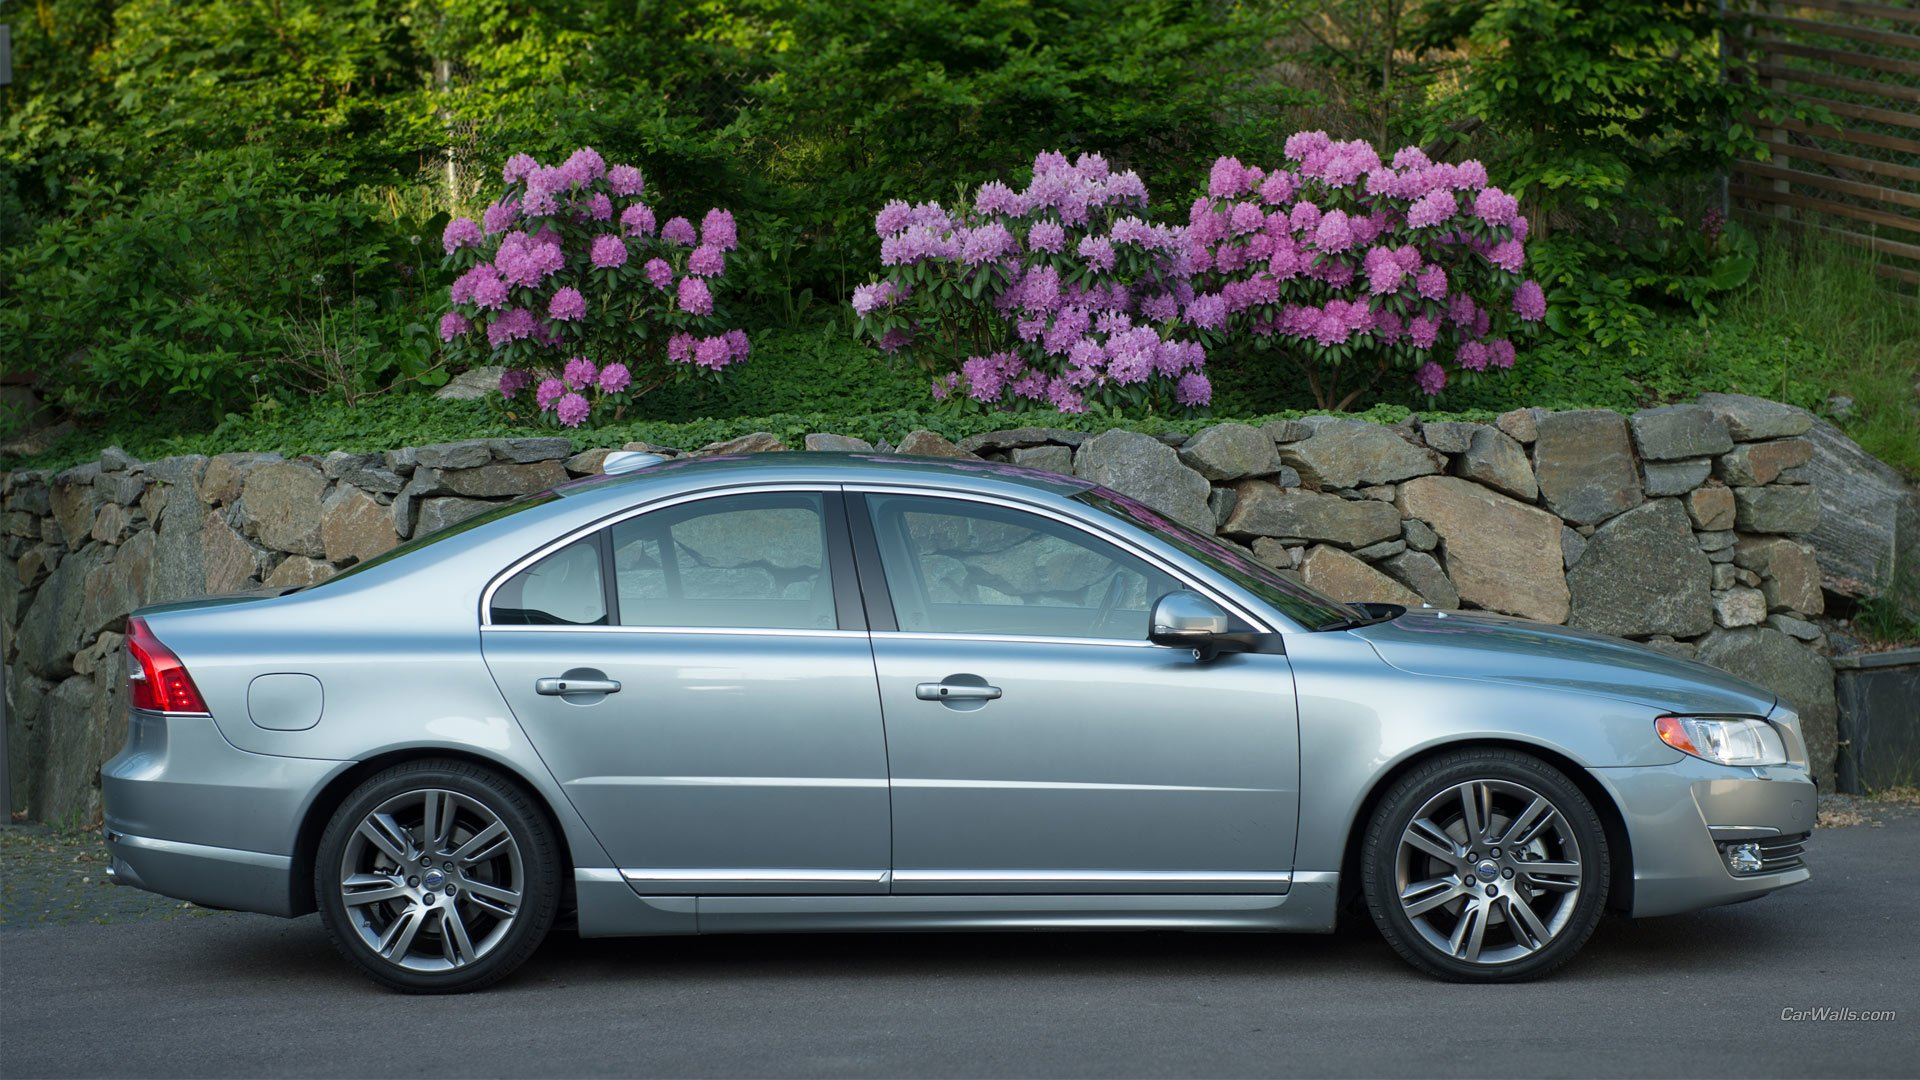 2014 volvo s80 full hd wallpaper and background 1920x1080 id 450514. Black Bedroom Furniture Sets. Home Design Ideas